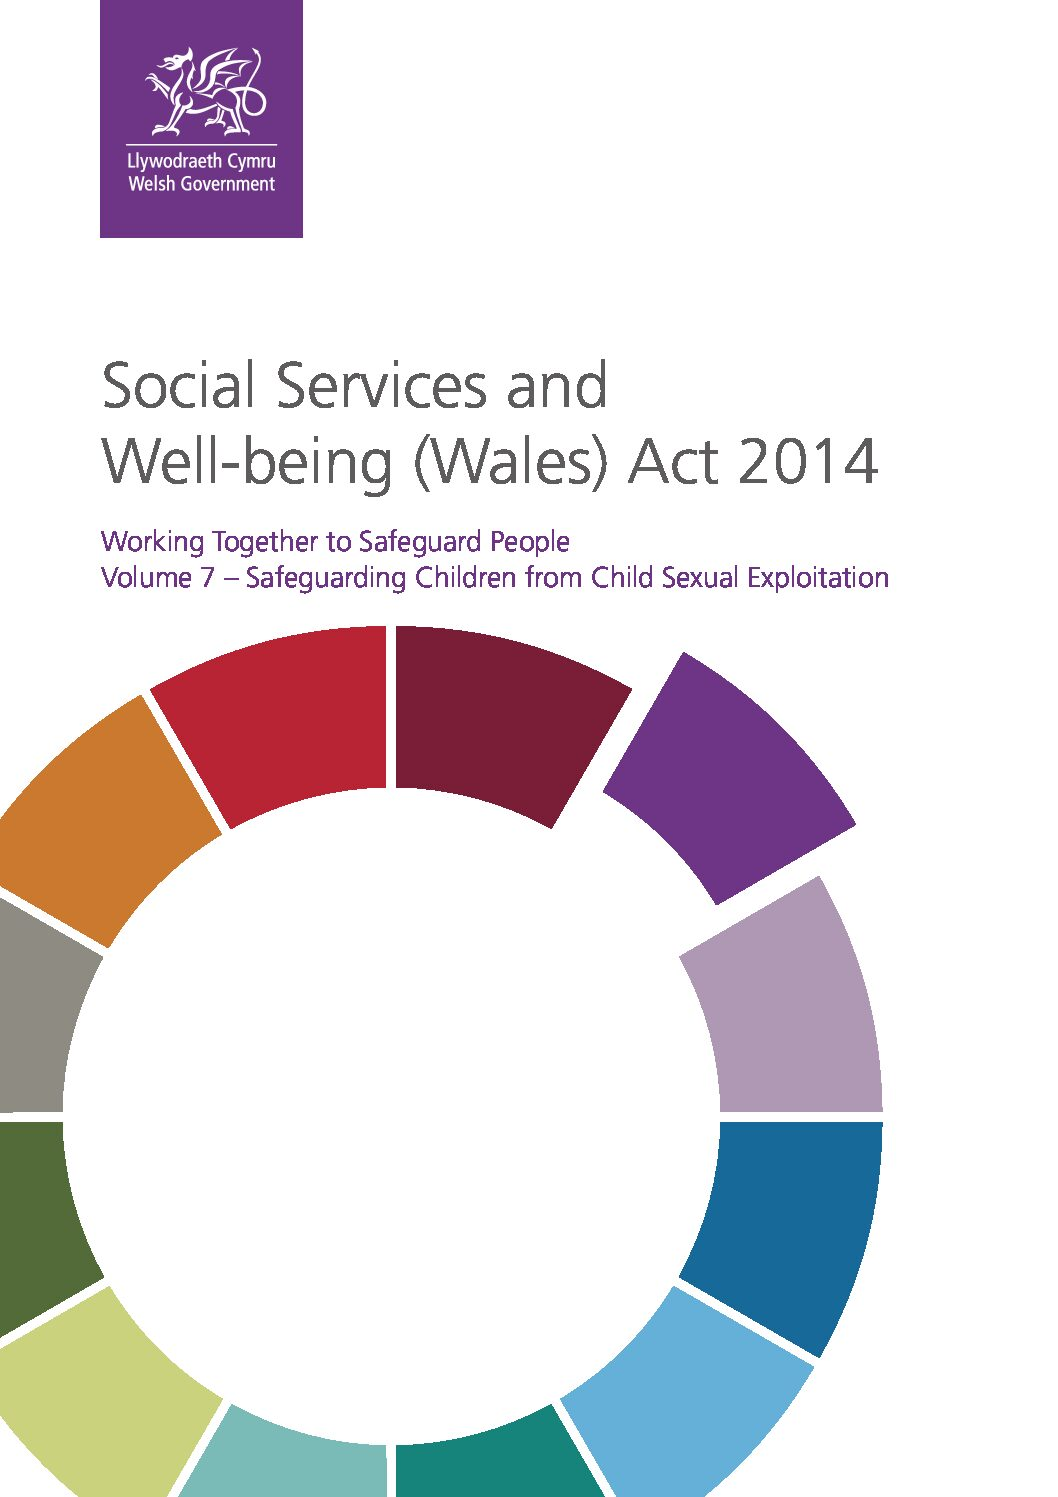 Working Together to Safeguard People Volume 7 – Safeguarding Children from Child Sexual Exploitation